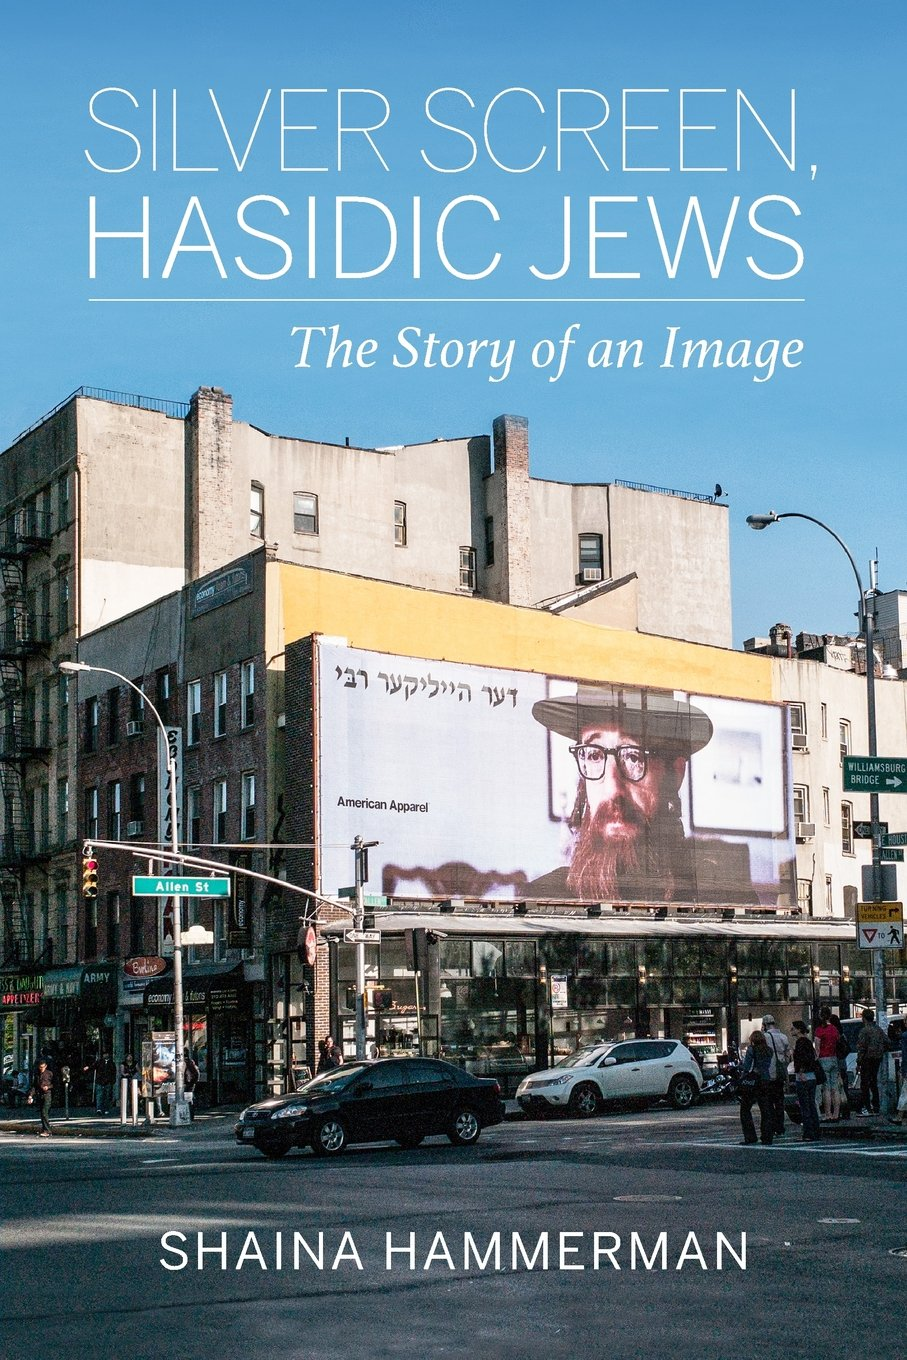 Silver Screen, Hasidic Jews: The Story of an Image